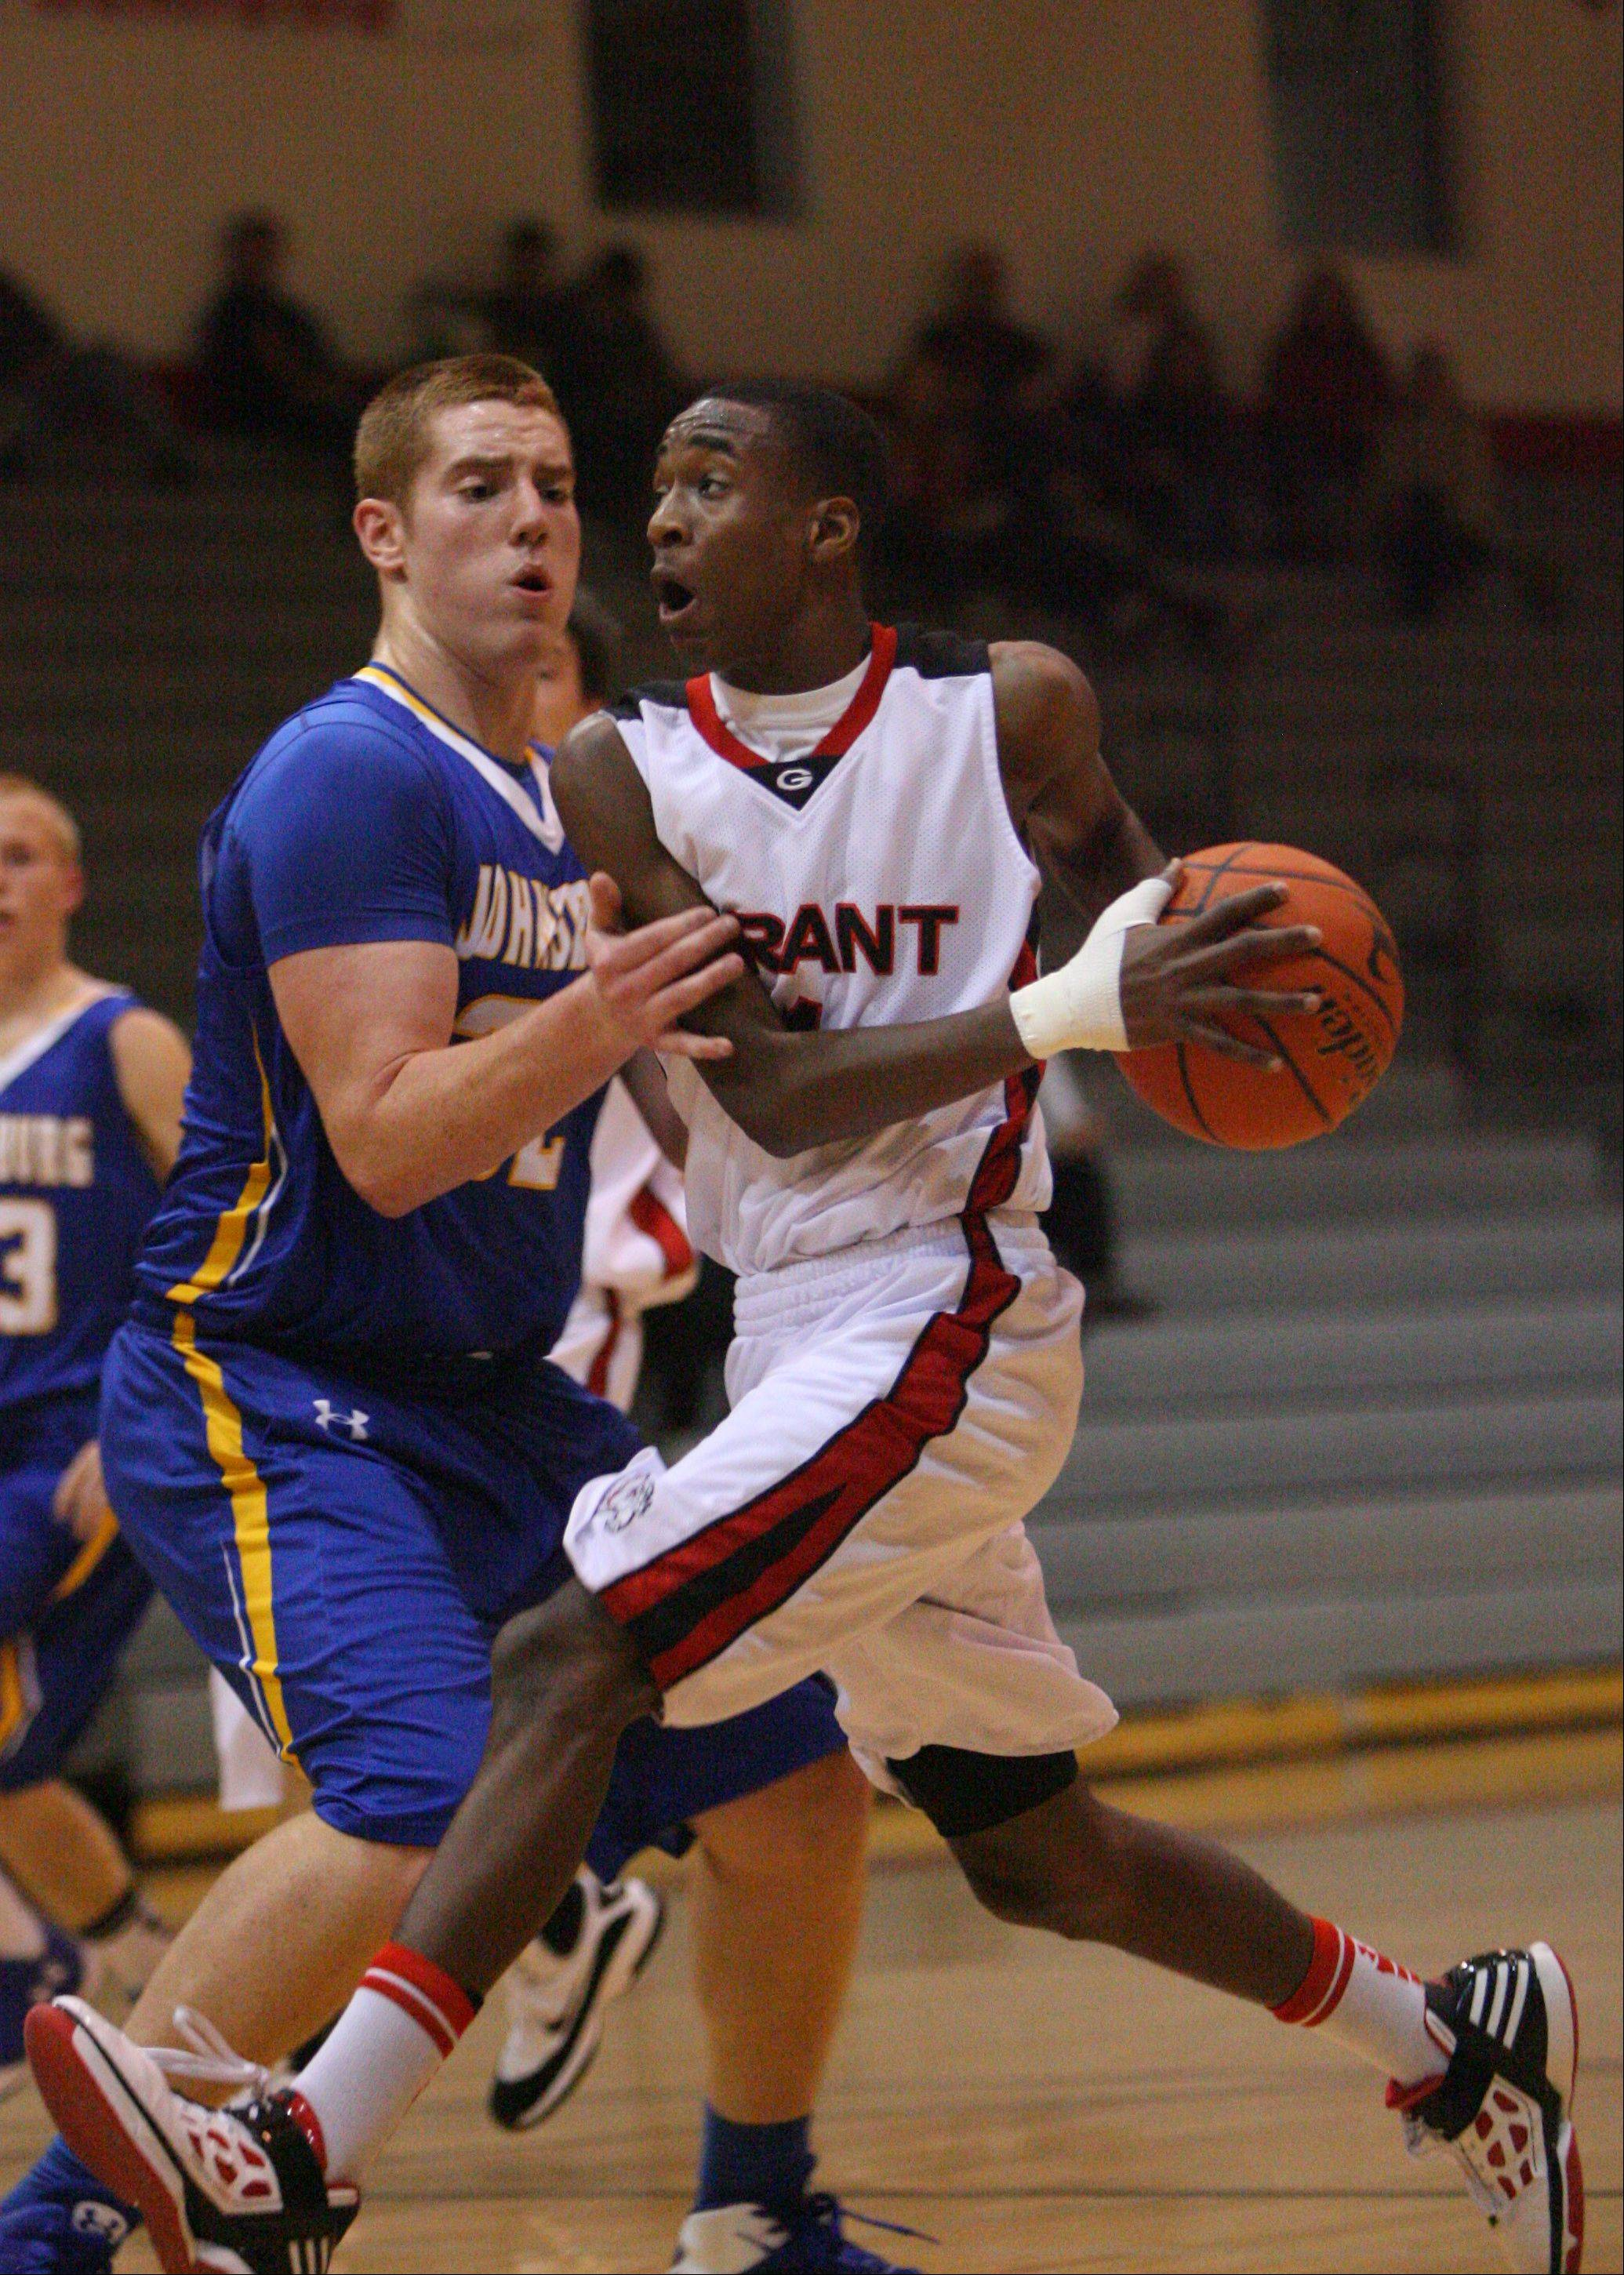 Images from the Grant vs. Johnsburg boys basketball game Thursday, Dec. 28, during the Grant High School Holiday Tournament in Fox Lake.